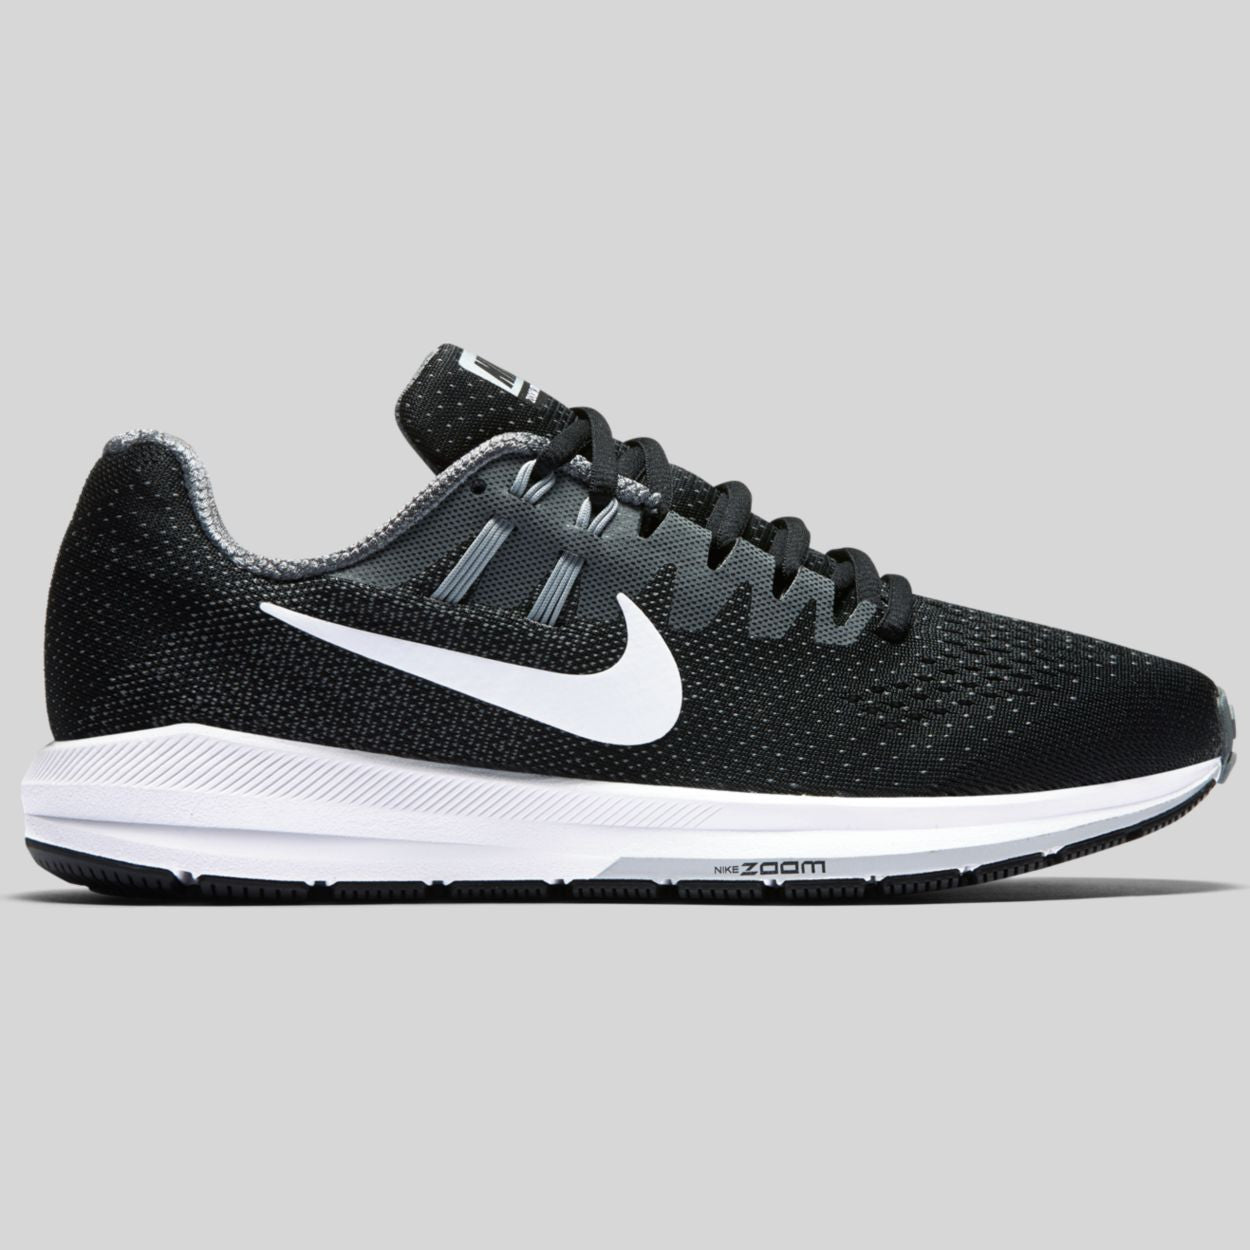 Nike Wmns Air Zoom Structure 20 Black White Cool Grey (849577-003 ... aa86c18df